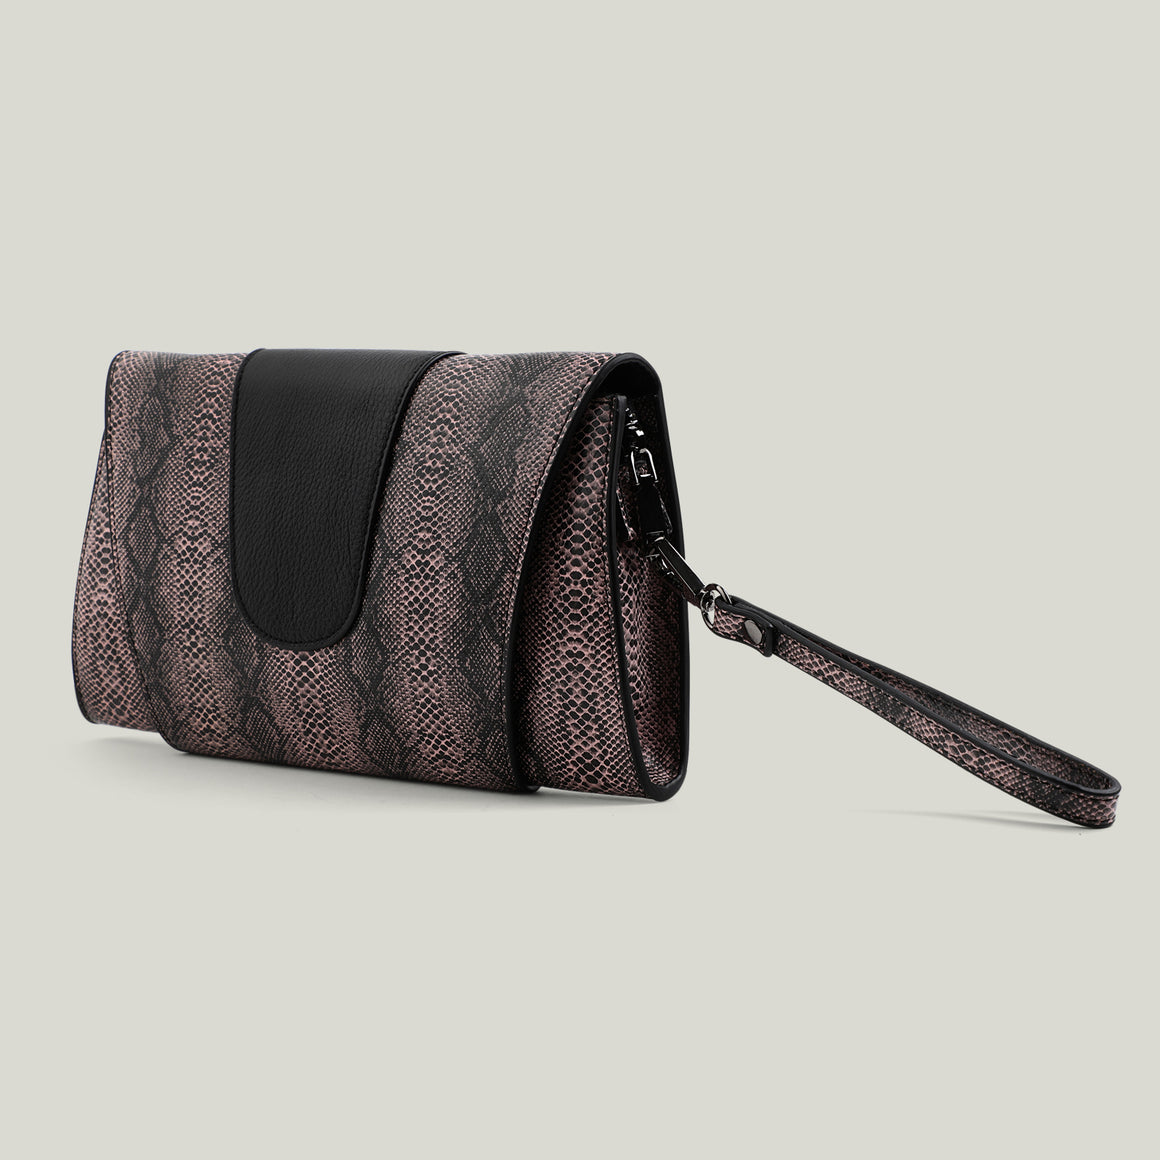 Clutch bag, Python-Passion, Salmon - Dminimis